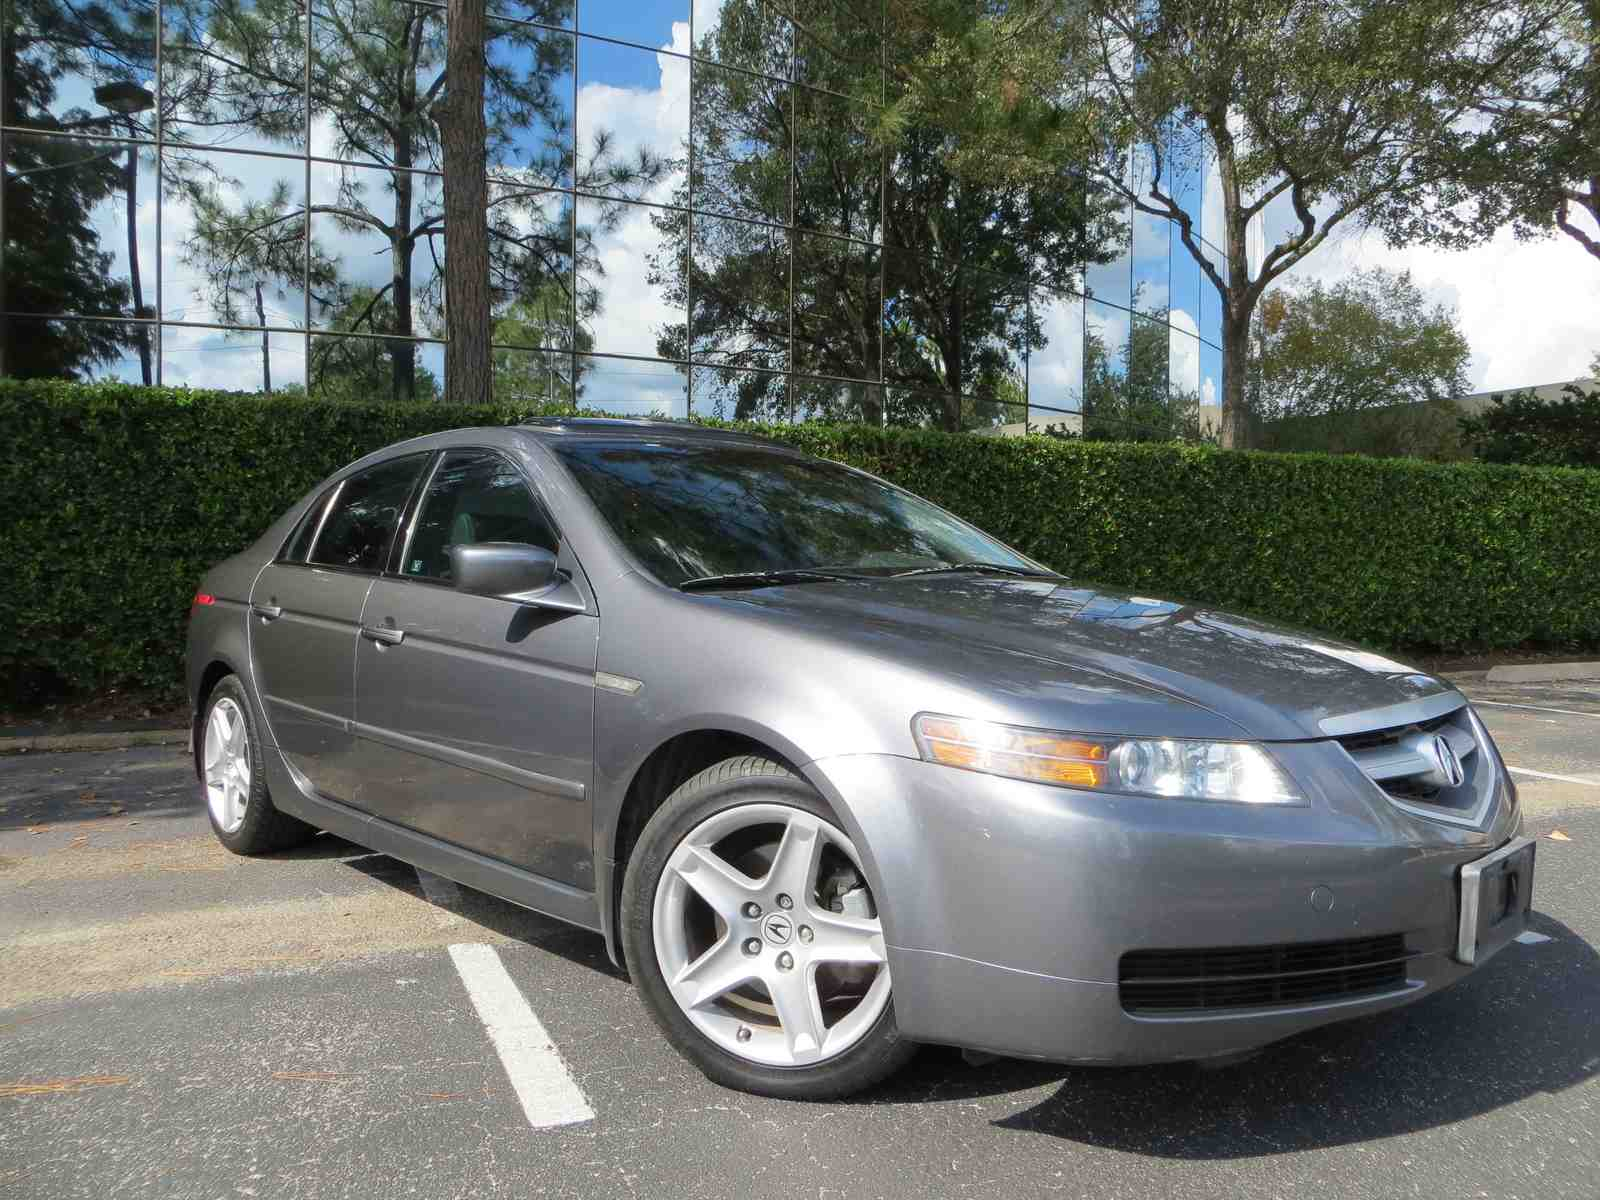 2004 Acura 3.2TL Workshop Repair & Service Manual (1,963 Pages, Searchable,  Printable